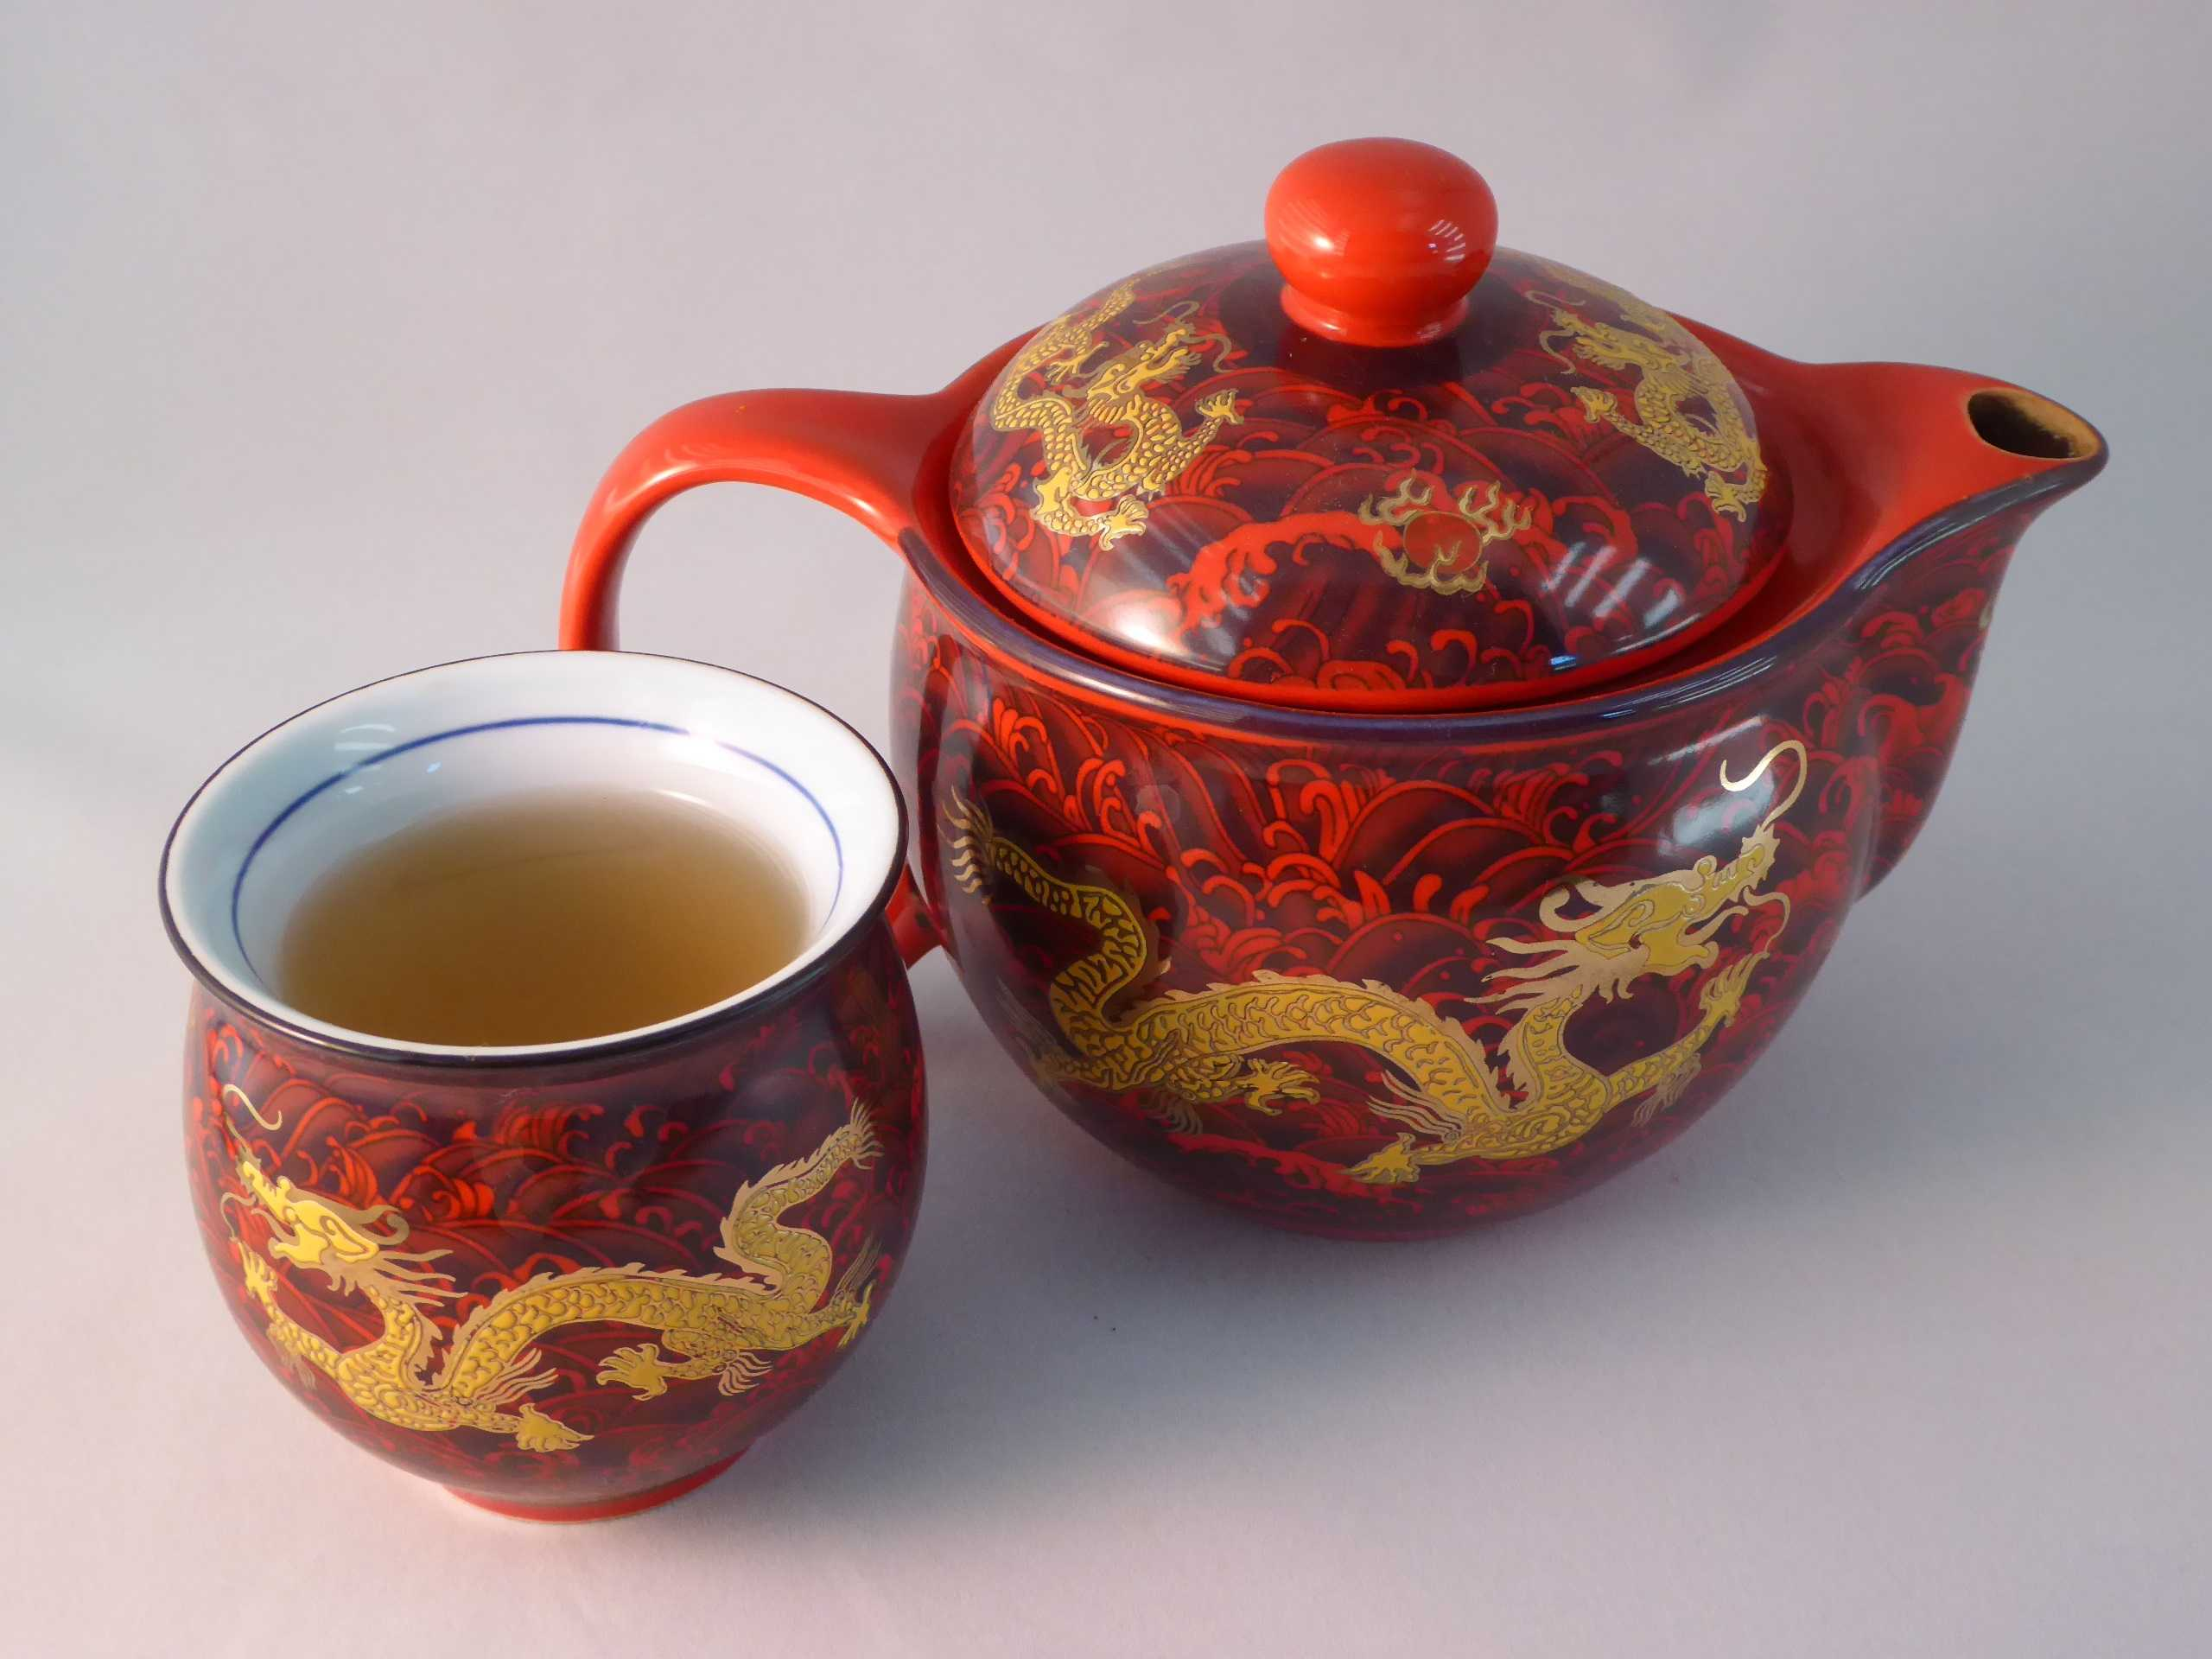 tea-teapot-pot-cup-chinese-red-827430-pxhere.com (1)